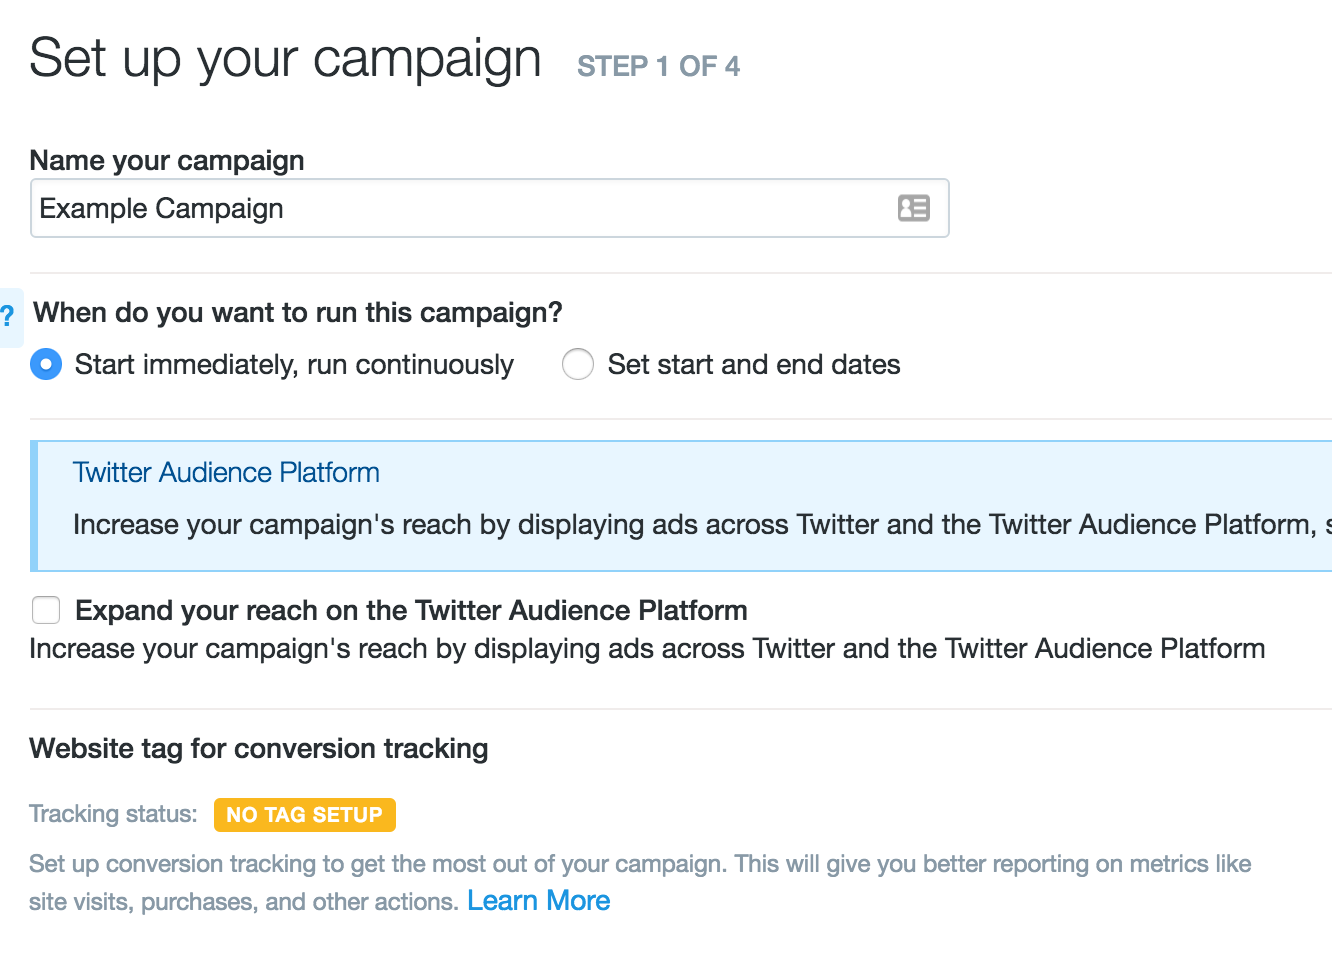 Twitter Campaign | The Ultimate Guide to Twitter Ads for Startups and Small Businesses